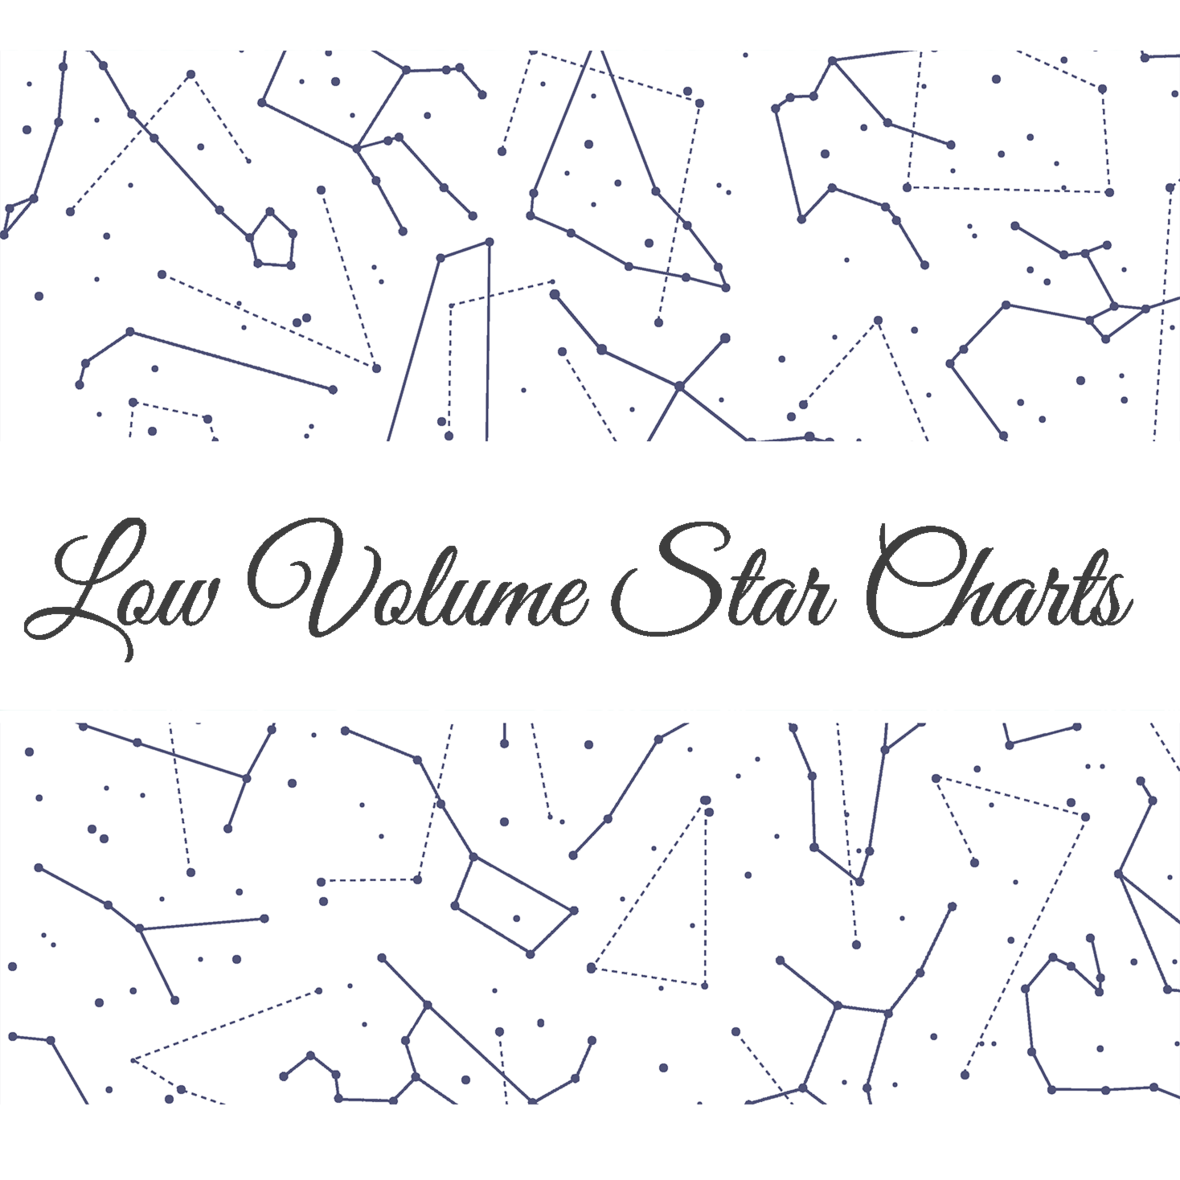 Promo Star Charts Low